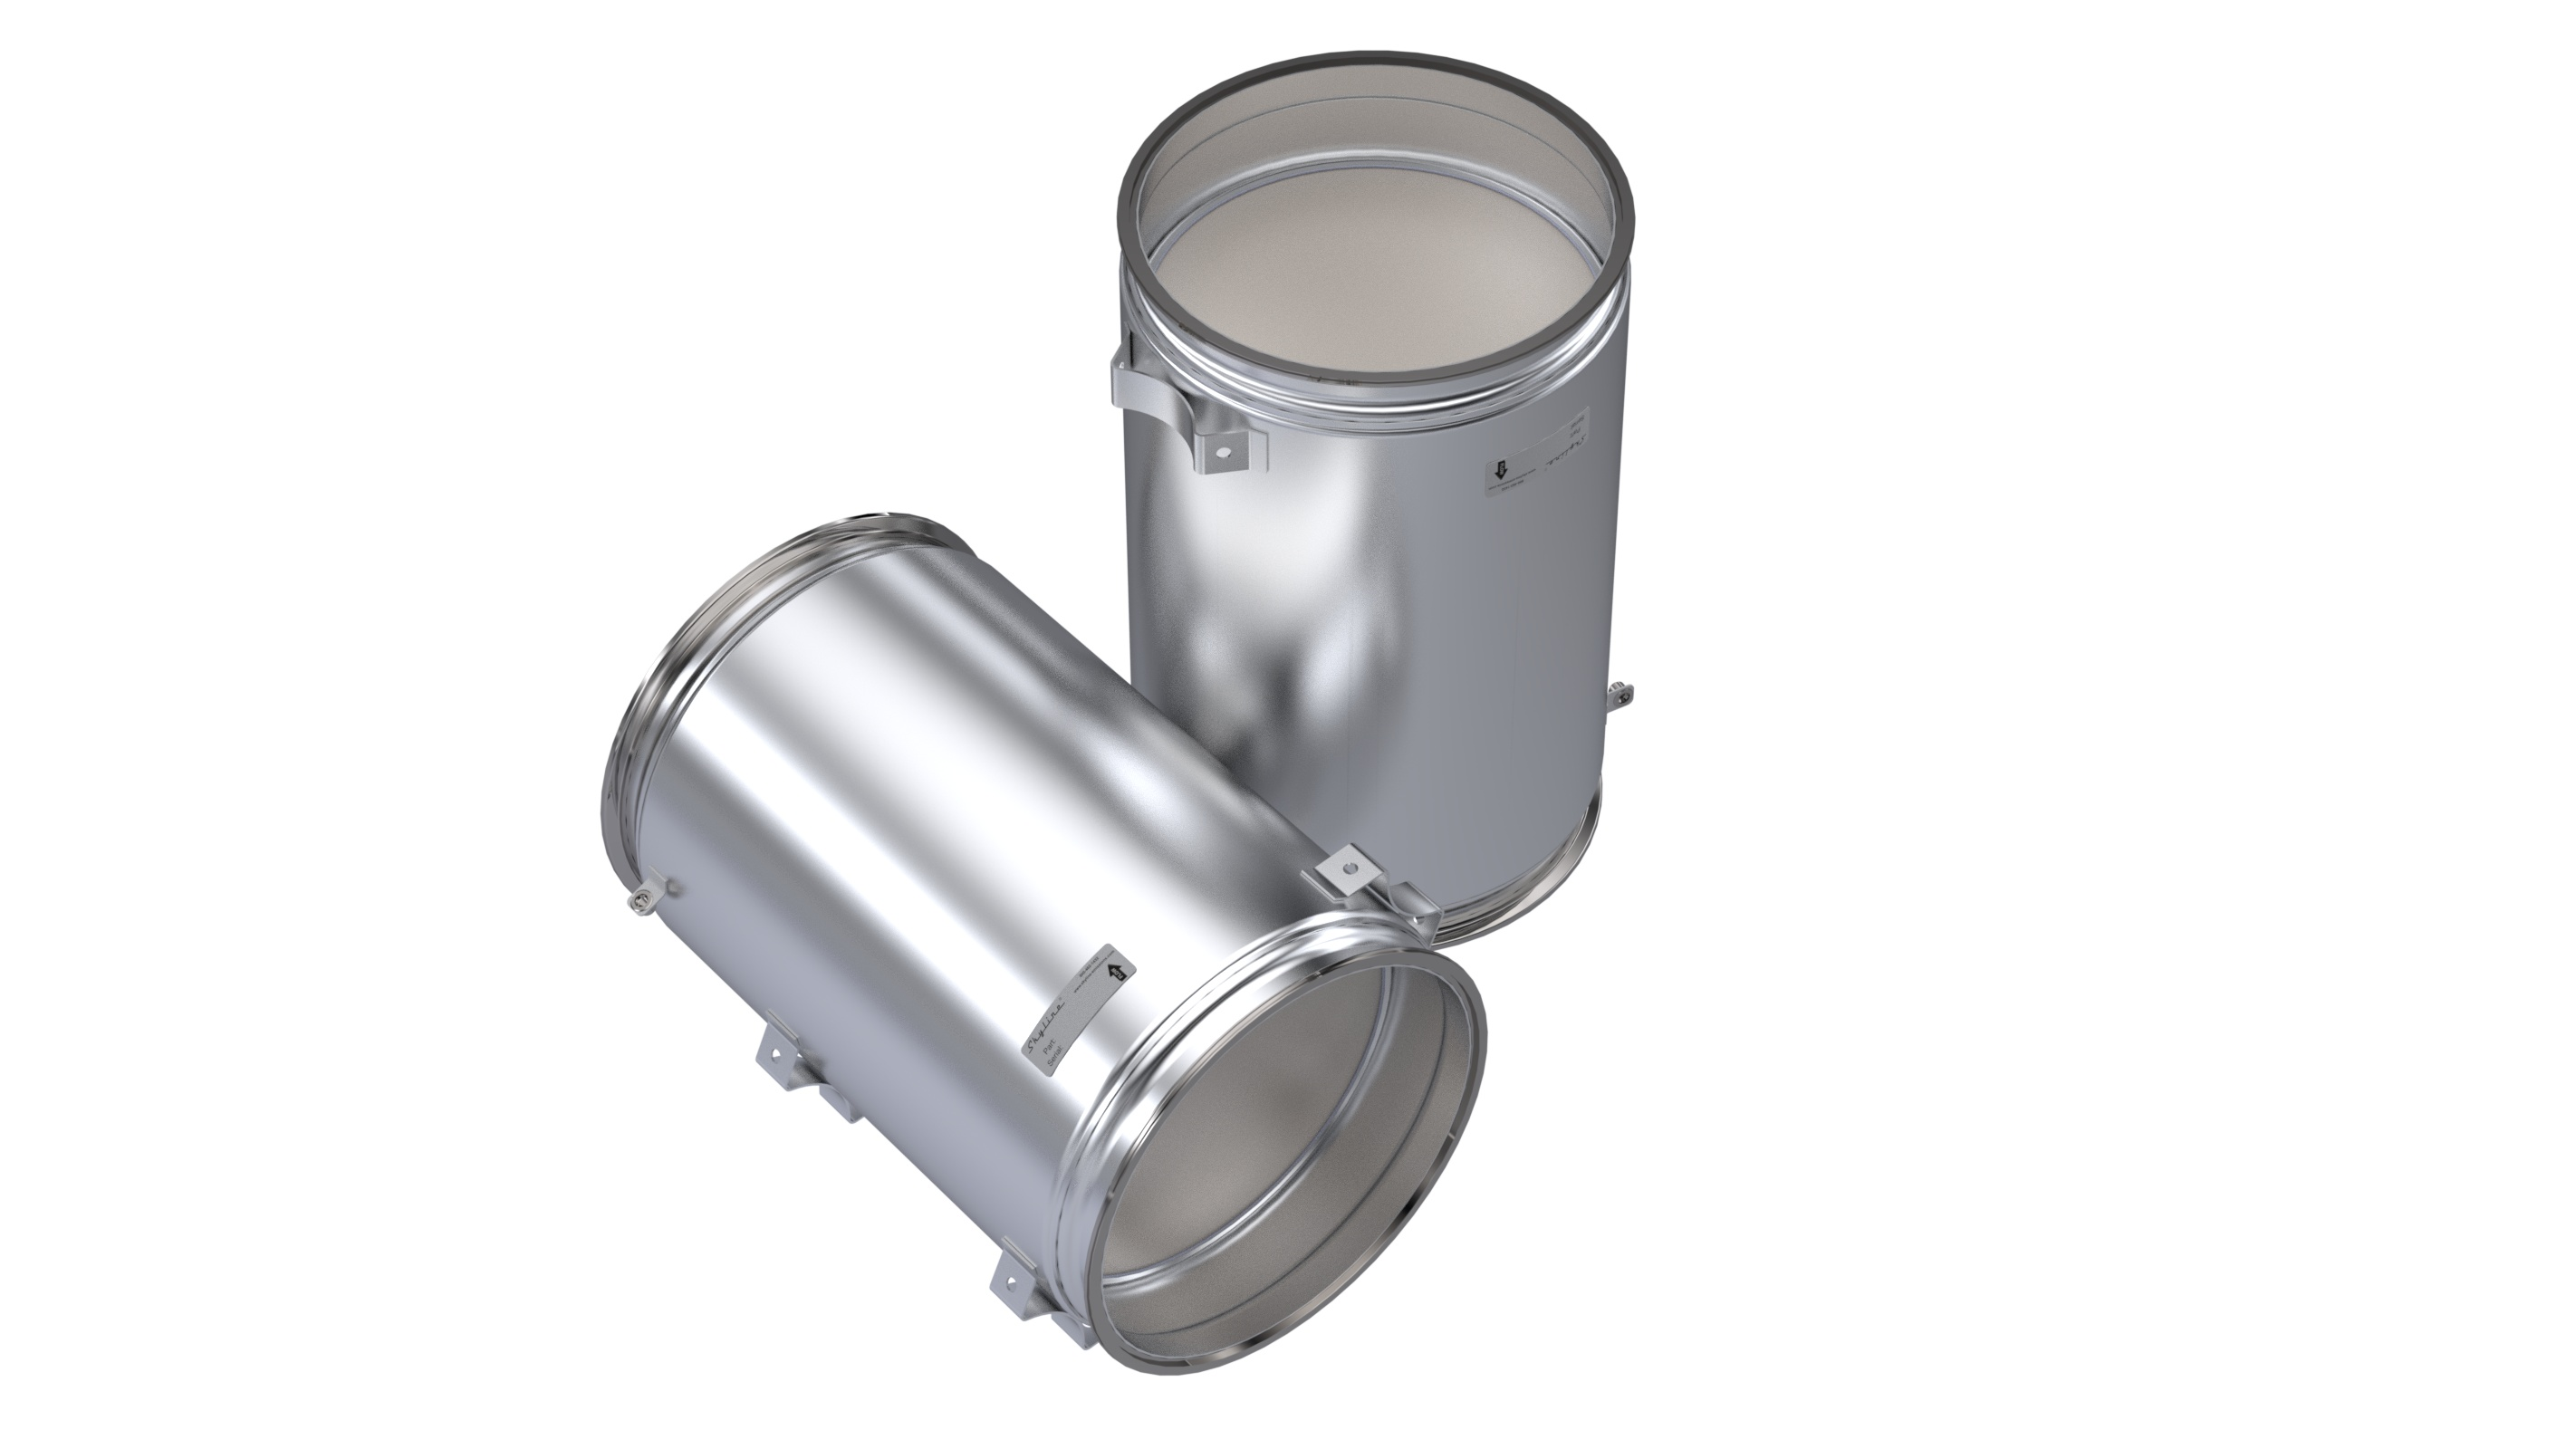 DQ1508-C_Skyline Diesel Particulate Filter DPF with Gasket and Clamp